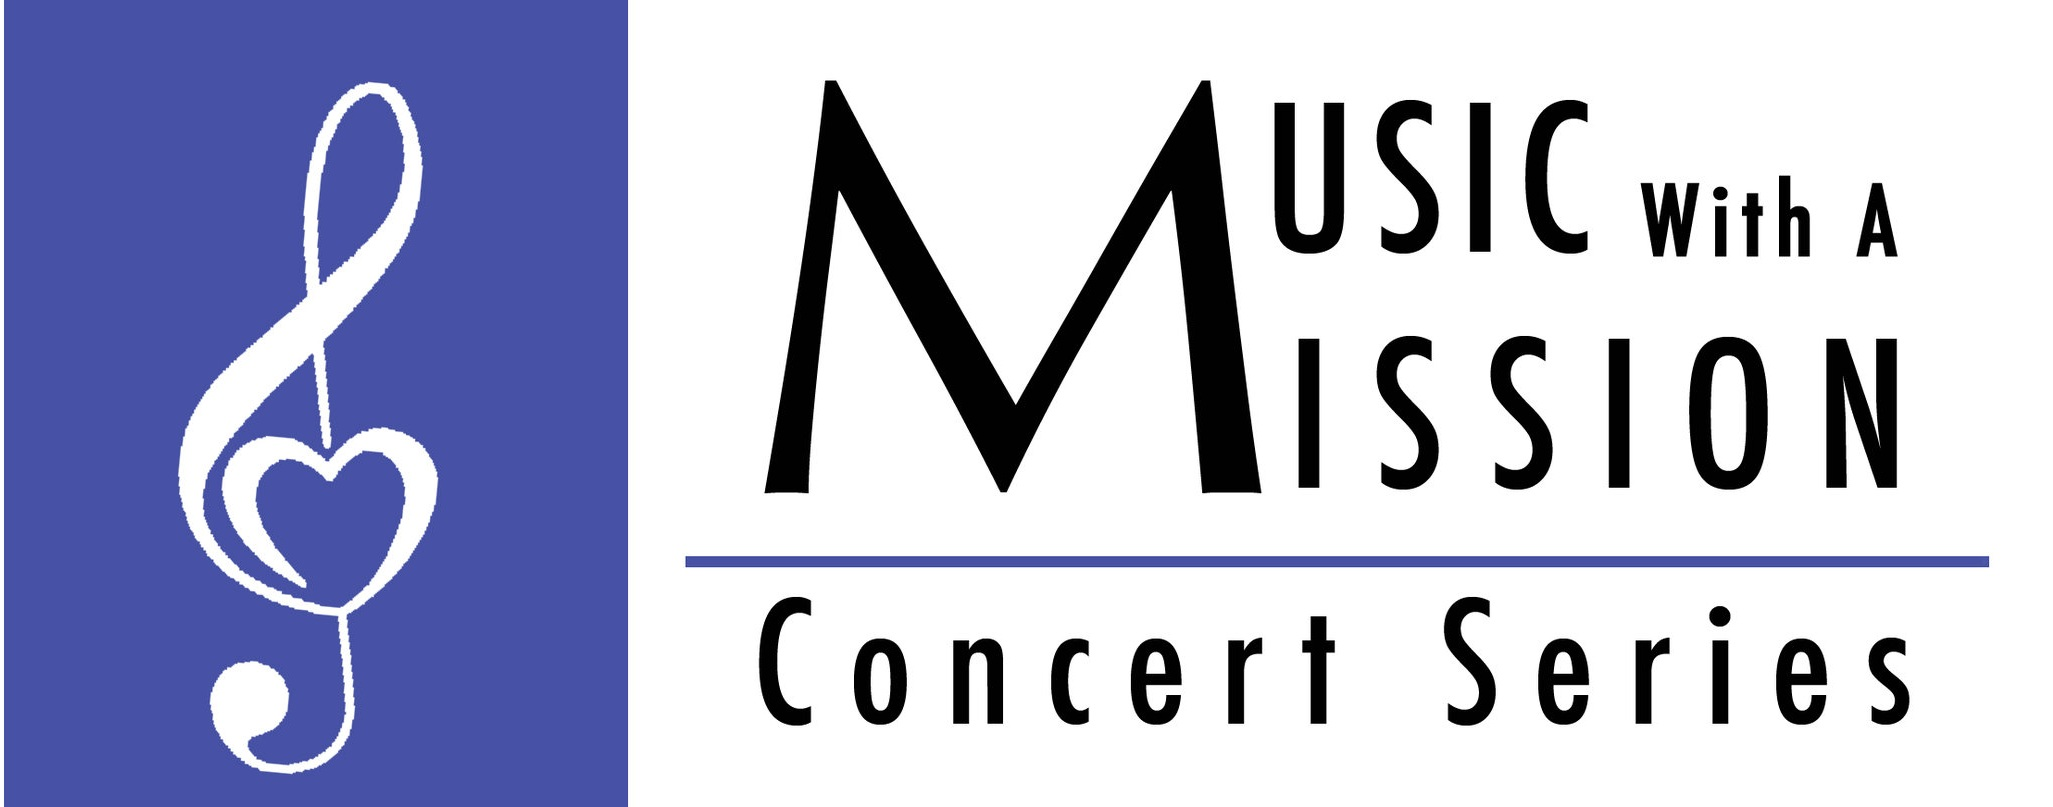 music-with-a-mission-logo+Larger.jpg